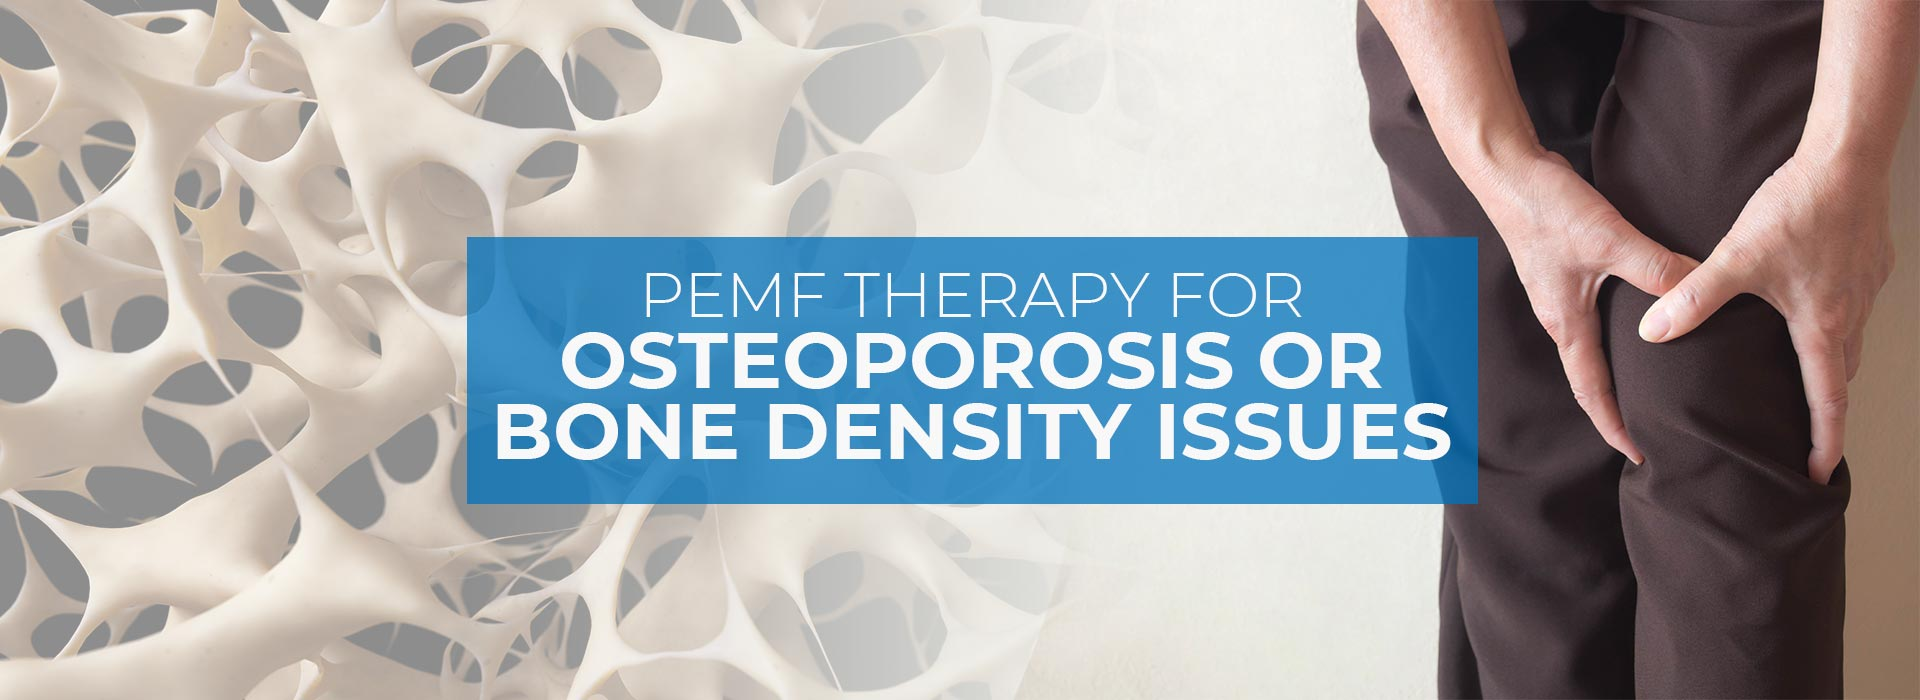 PEMF Therapy for Osteoporosis or Bone Density Issues